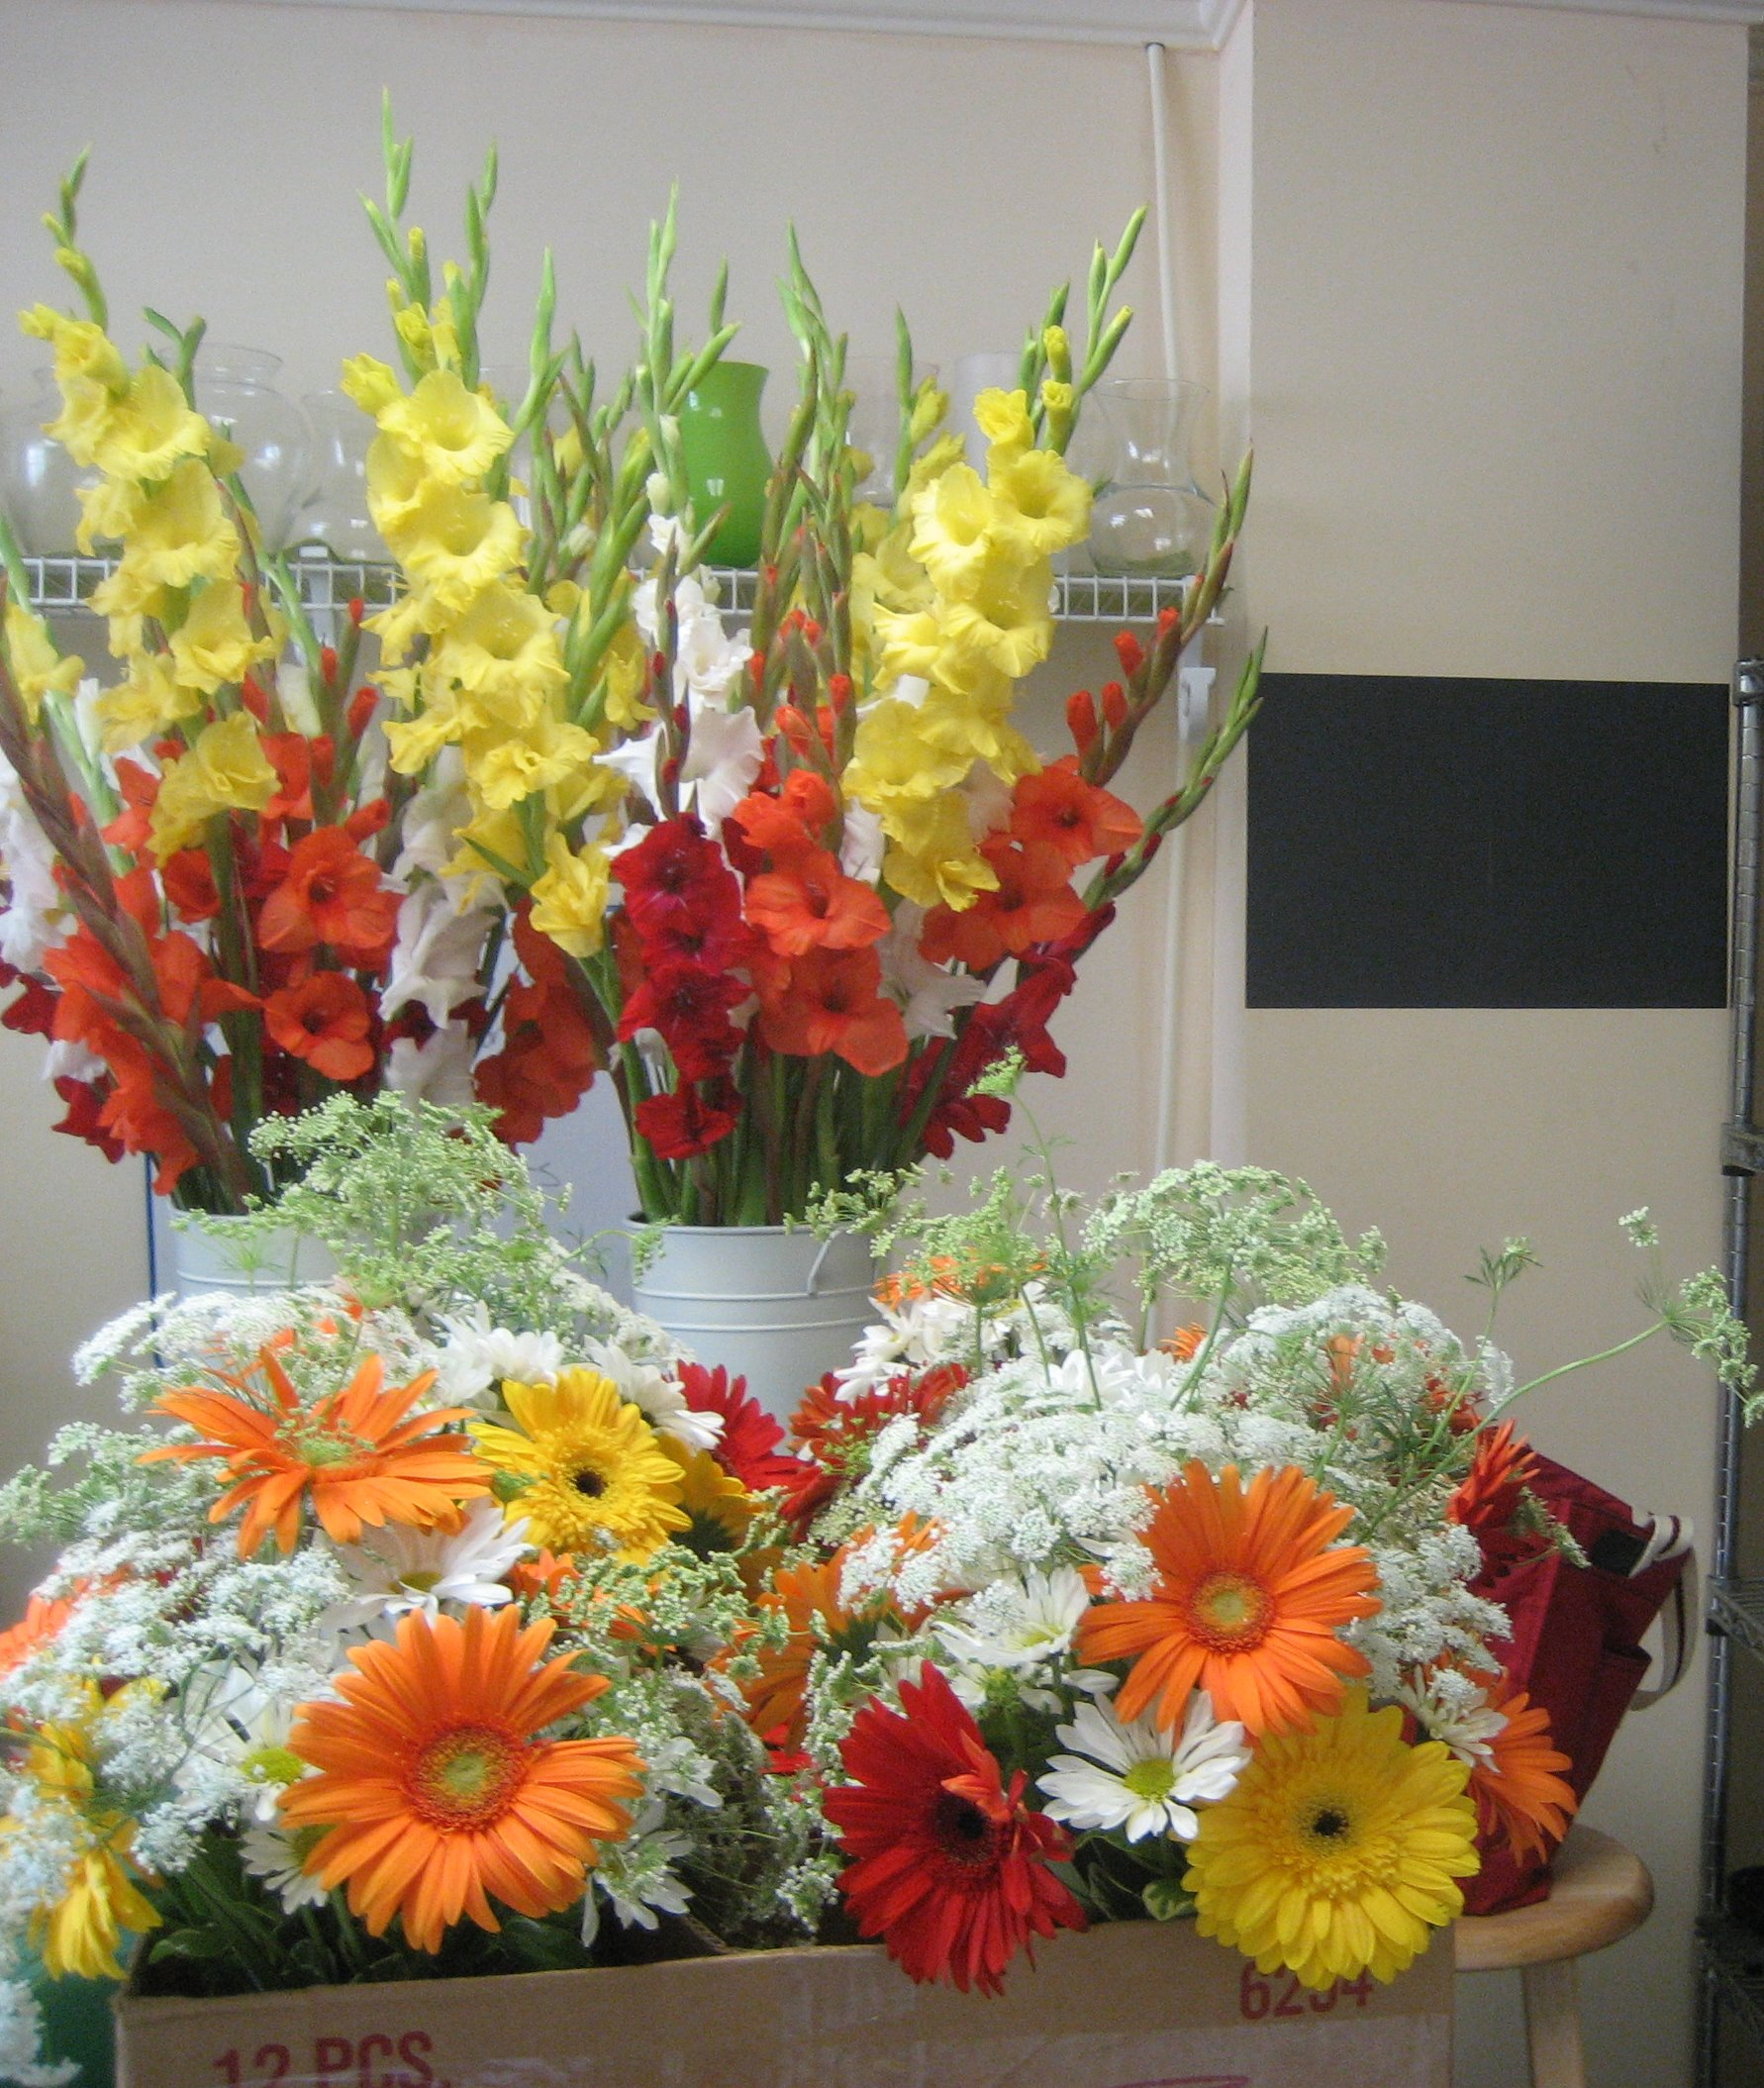 Orange, yellow and red. Gerber daisies, gladiolas and queen anne's lace